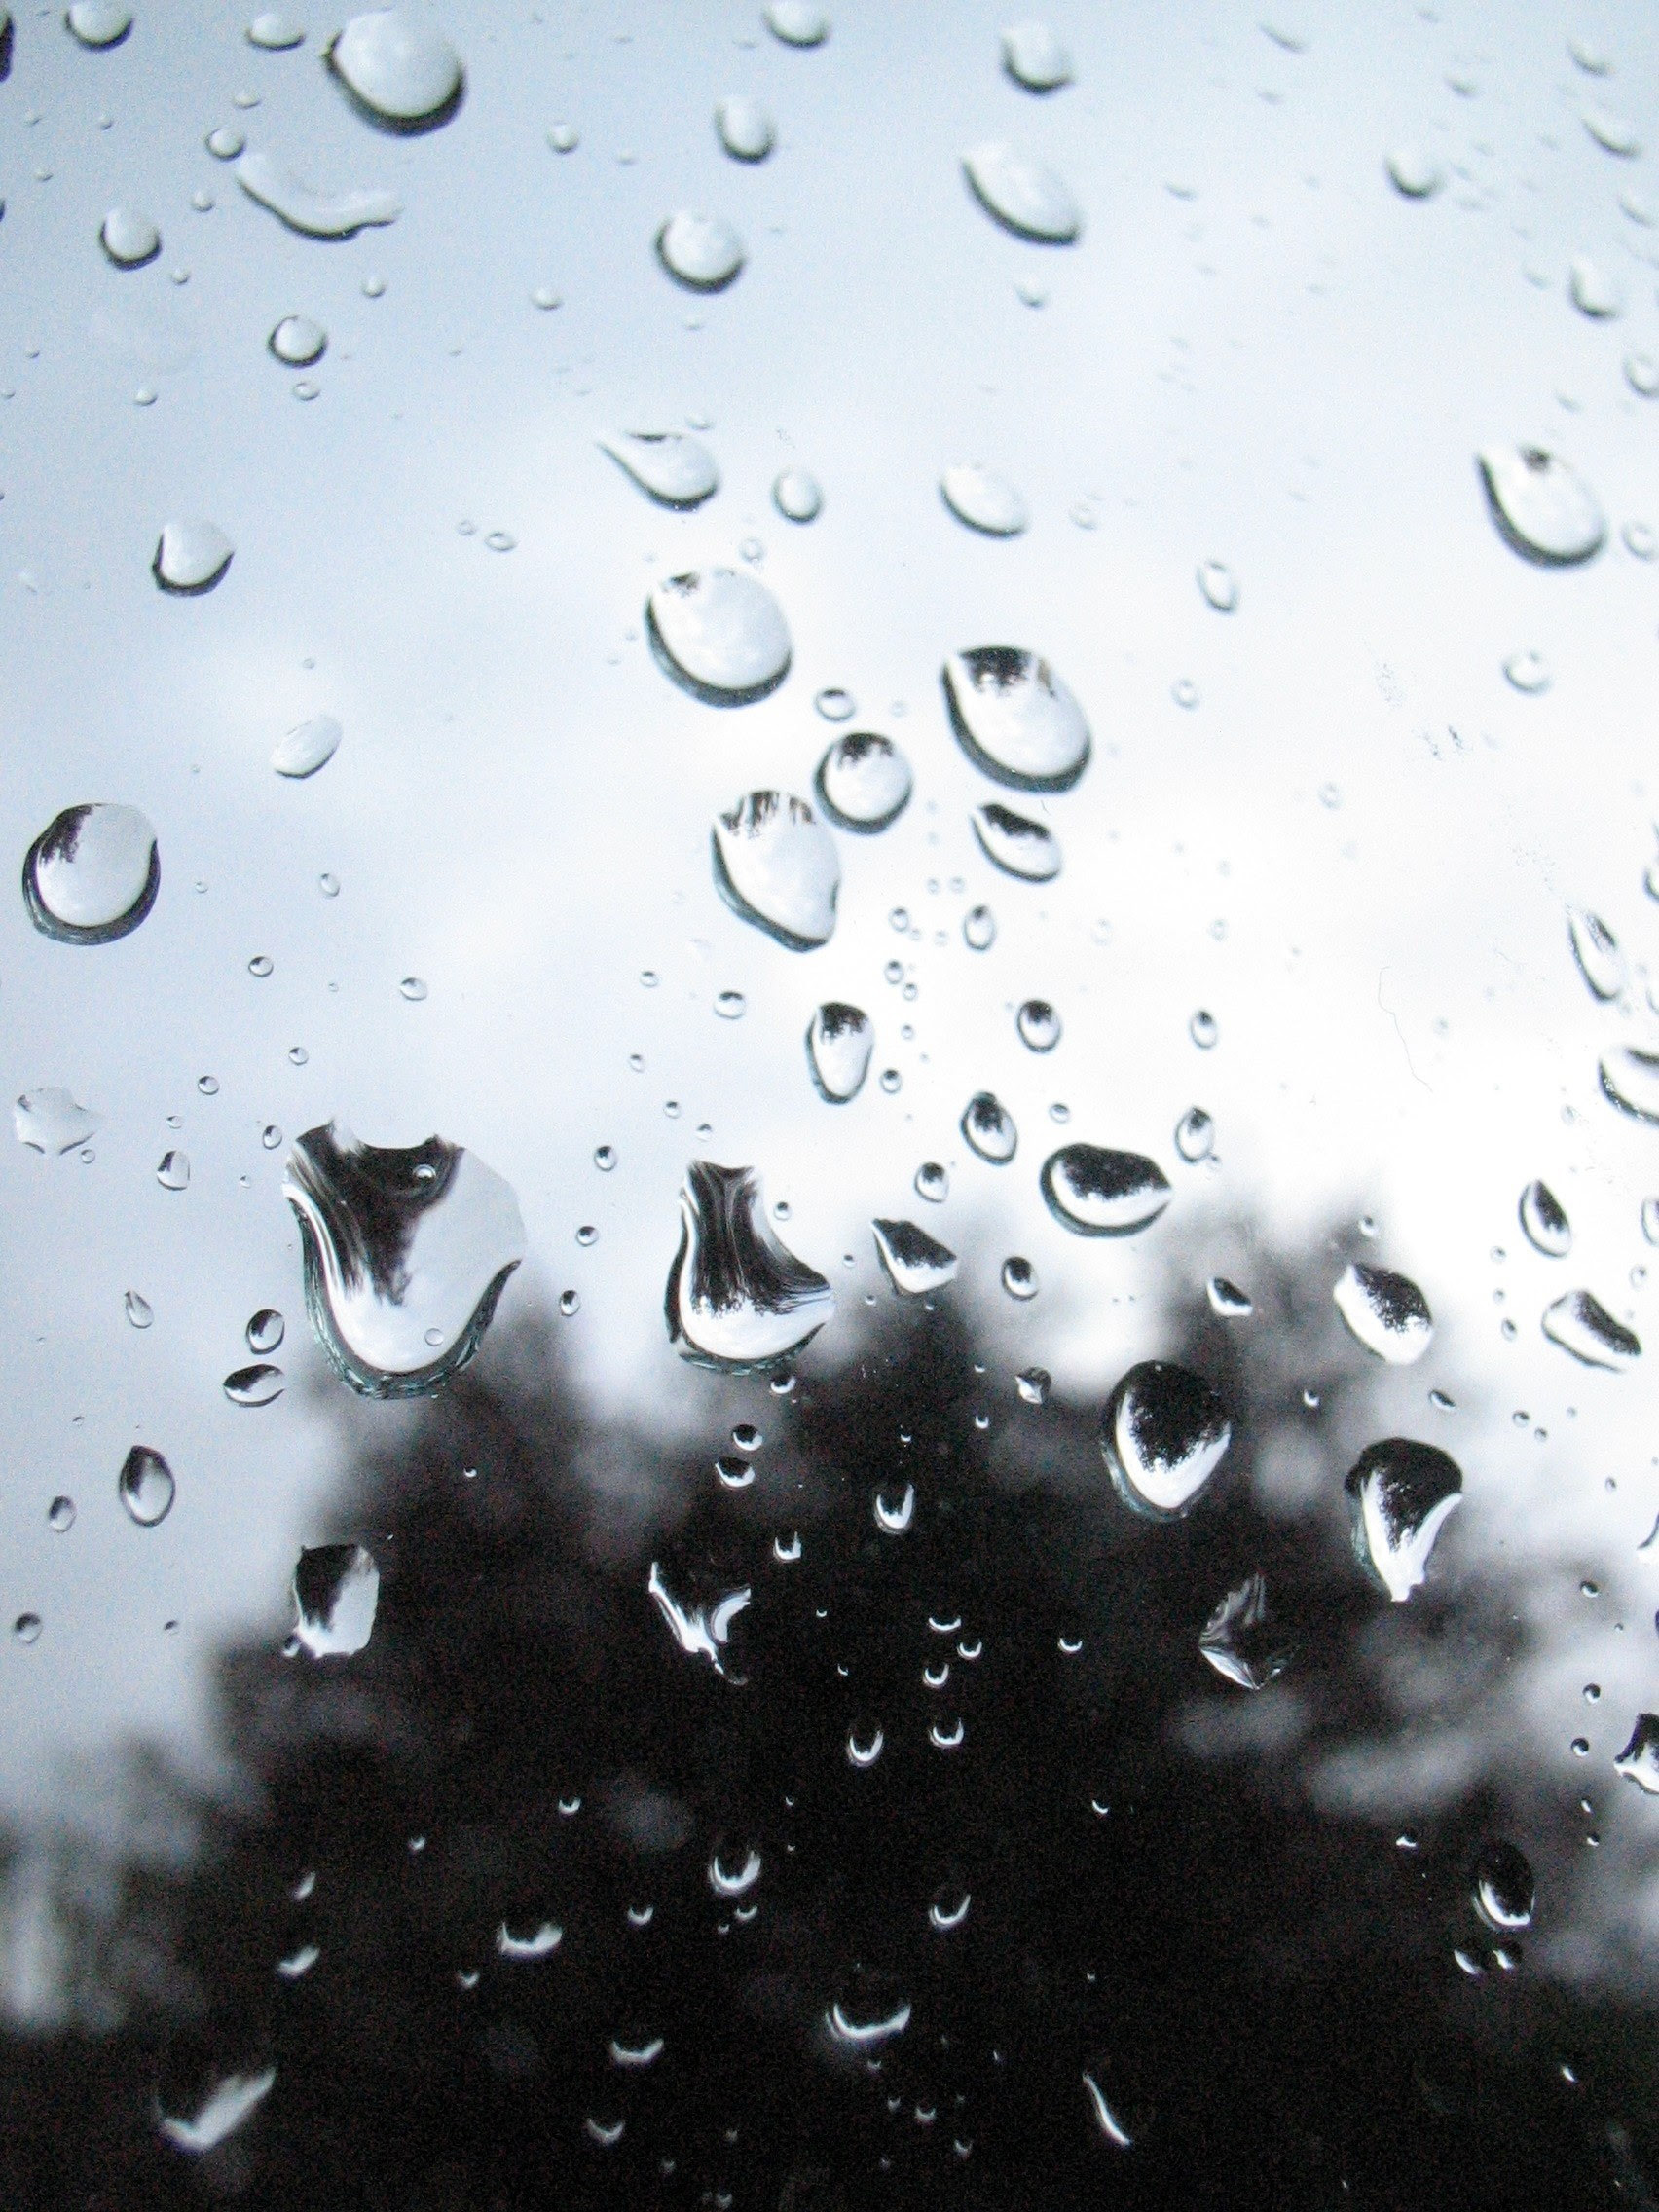 Rain Glass Drop And Water Hd Wallpaper And Background